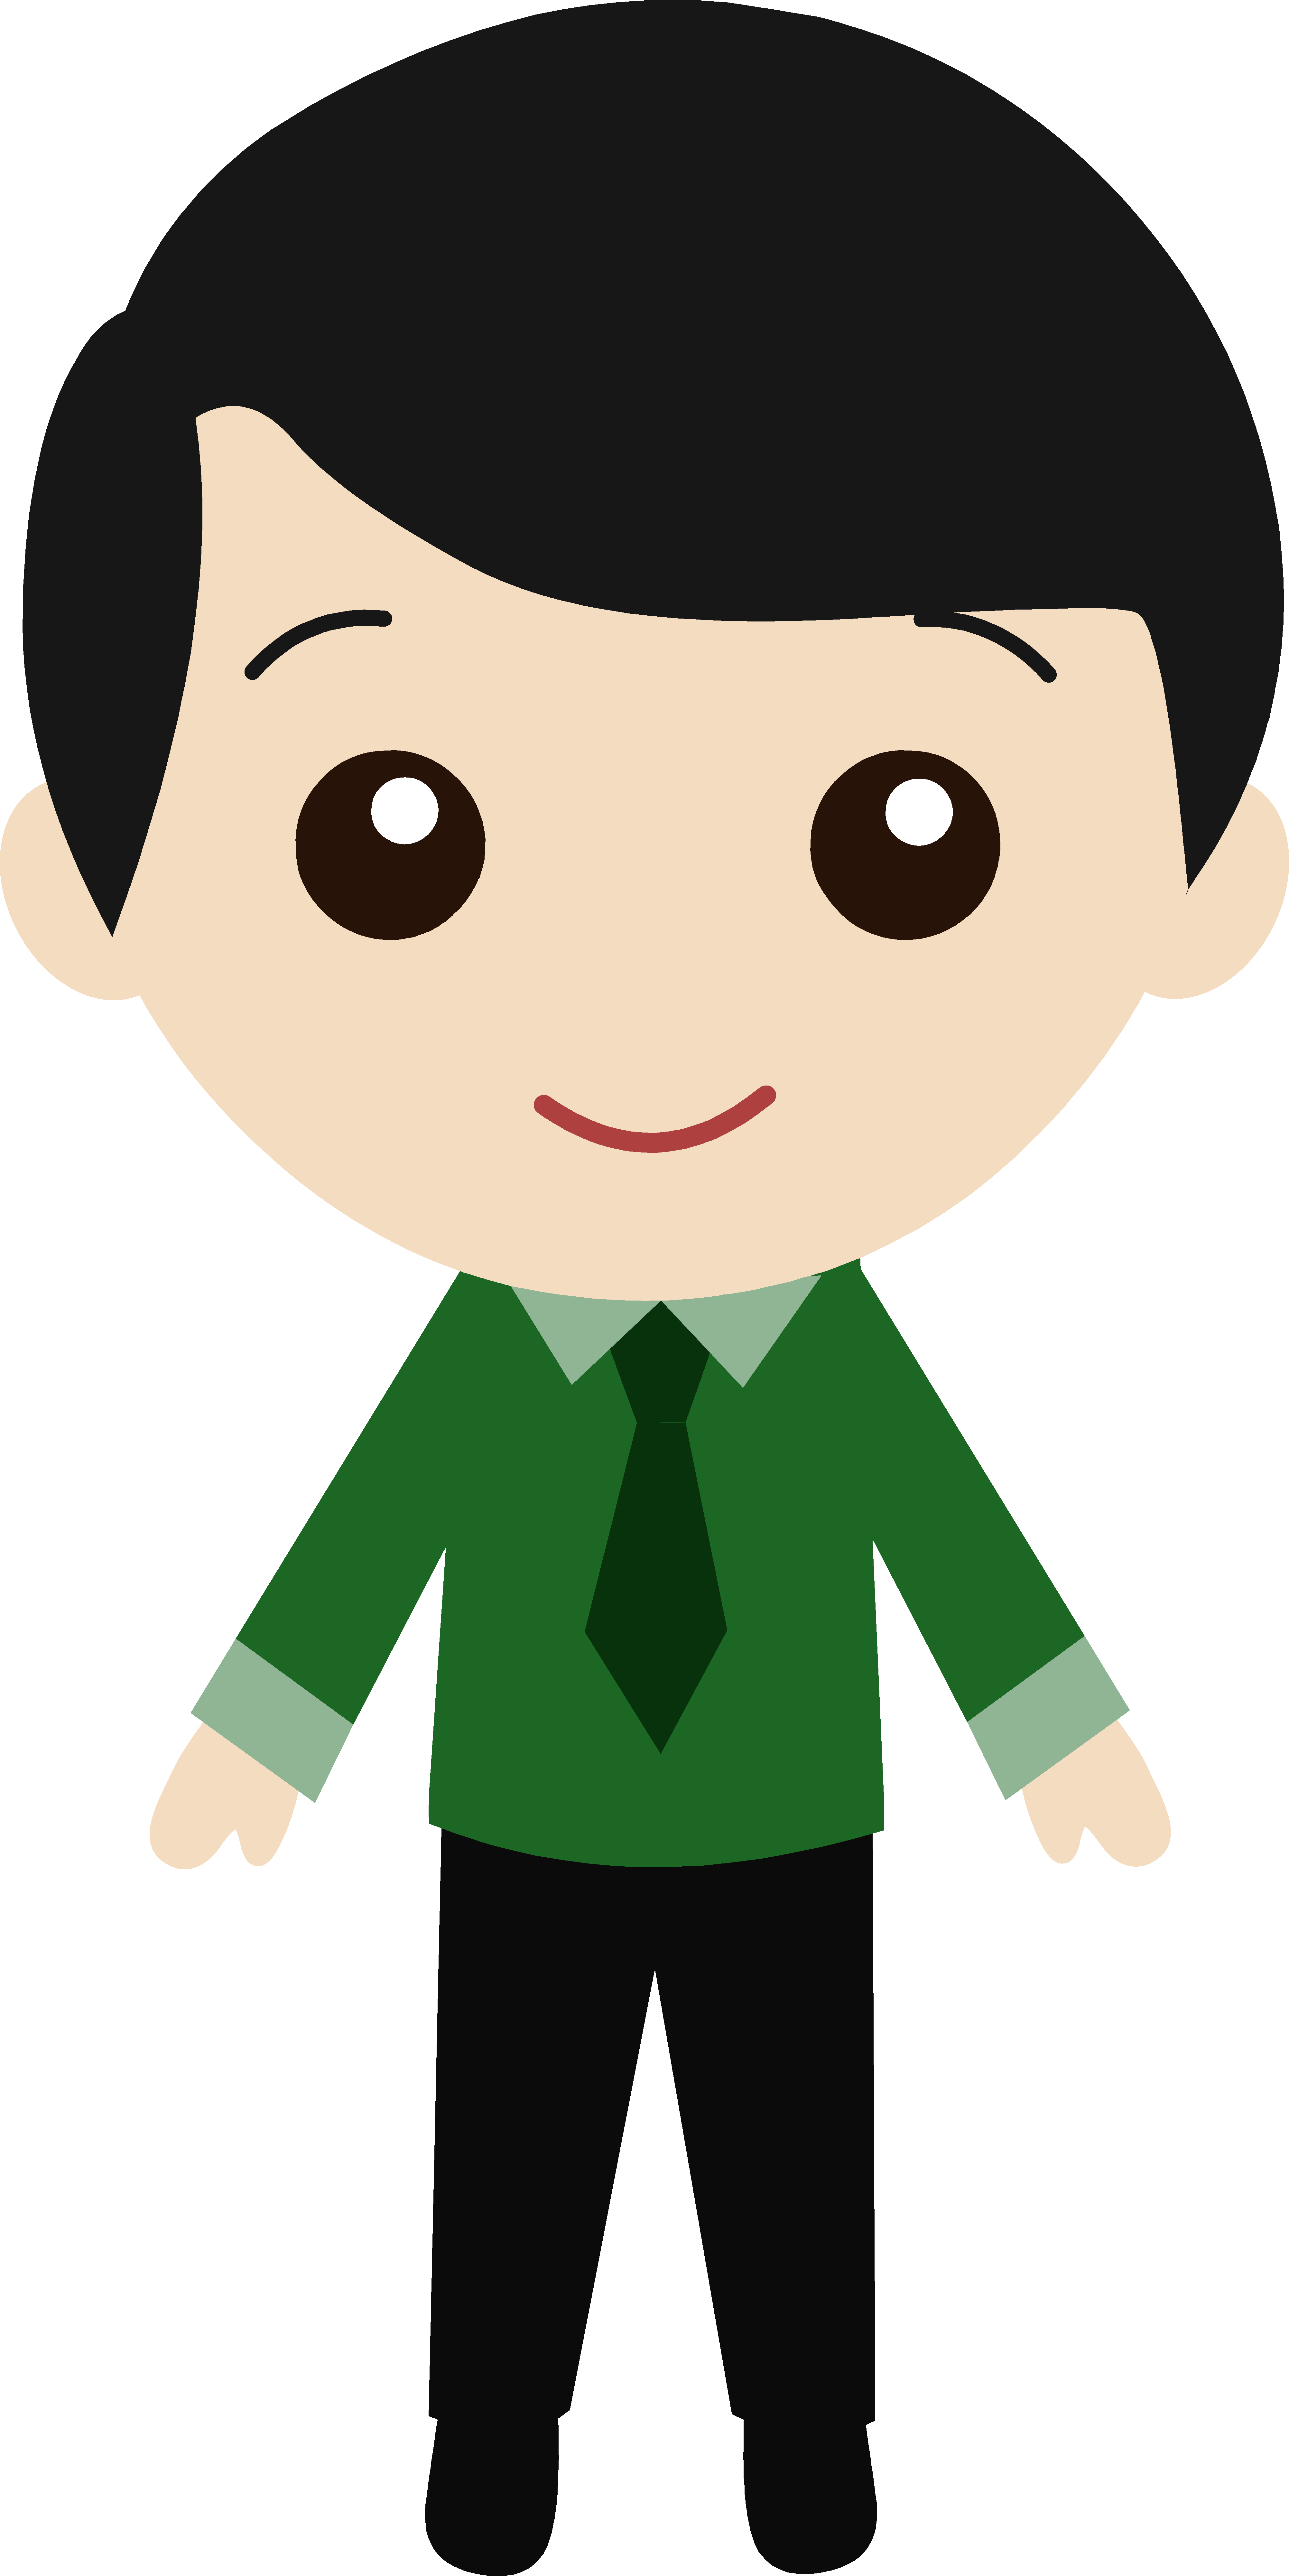 People boy free collection. Humans clipart brown hair guy